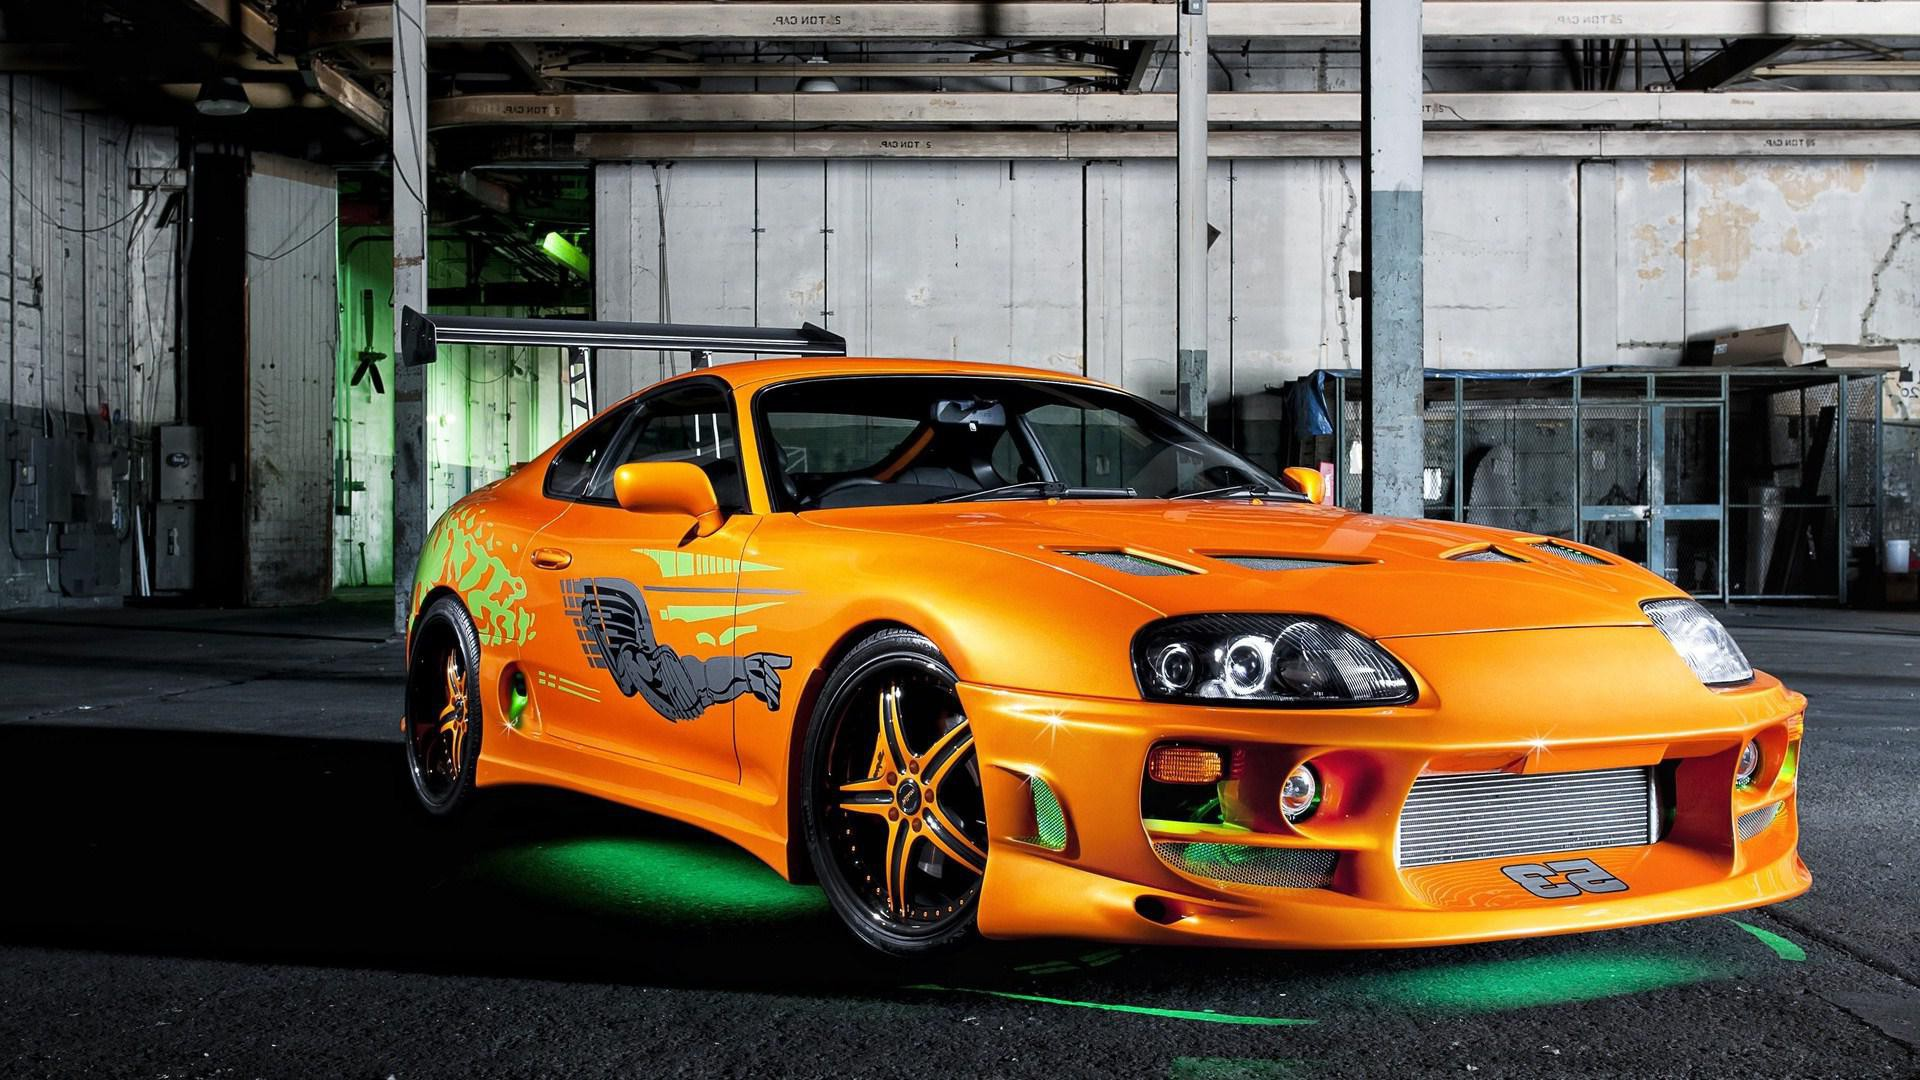 toyota supra wallpapers images photos pictures backgrounds. Black Bedroom Furniture Sets. Home Design Ideas